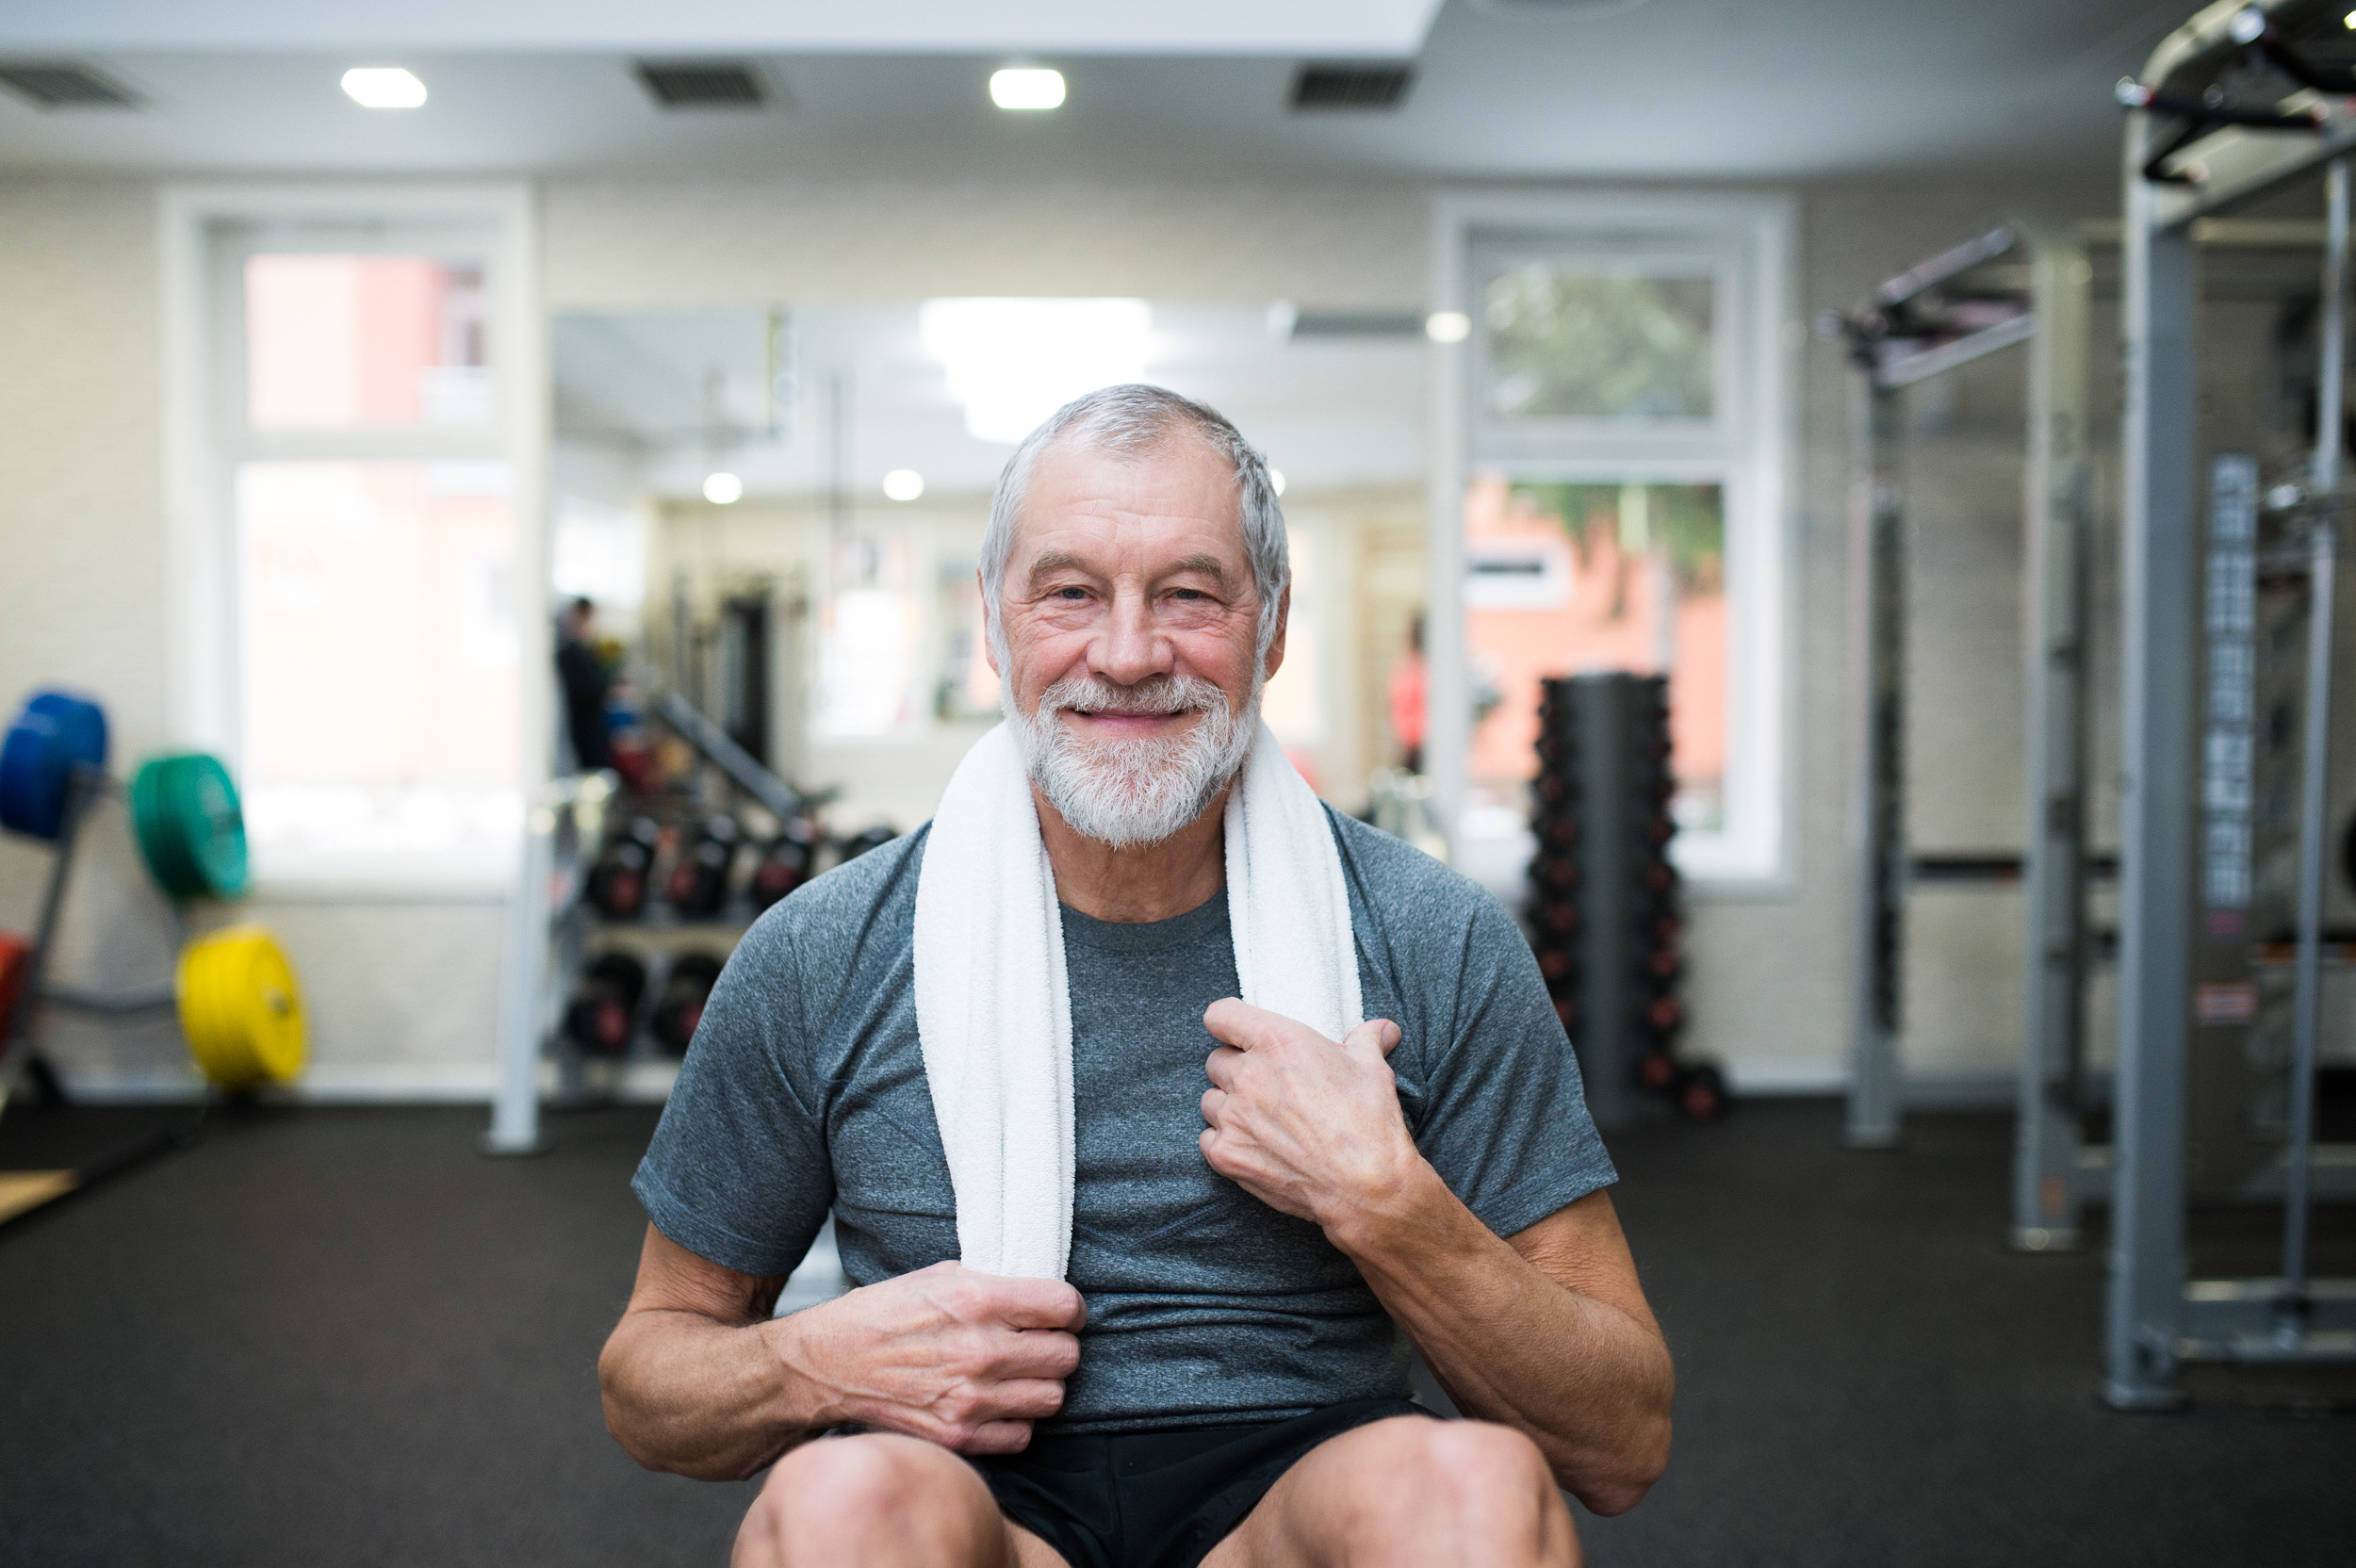 Trent Dementia image: photo of man in a gym